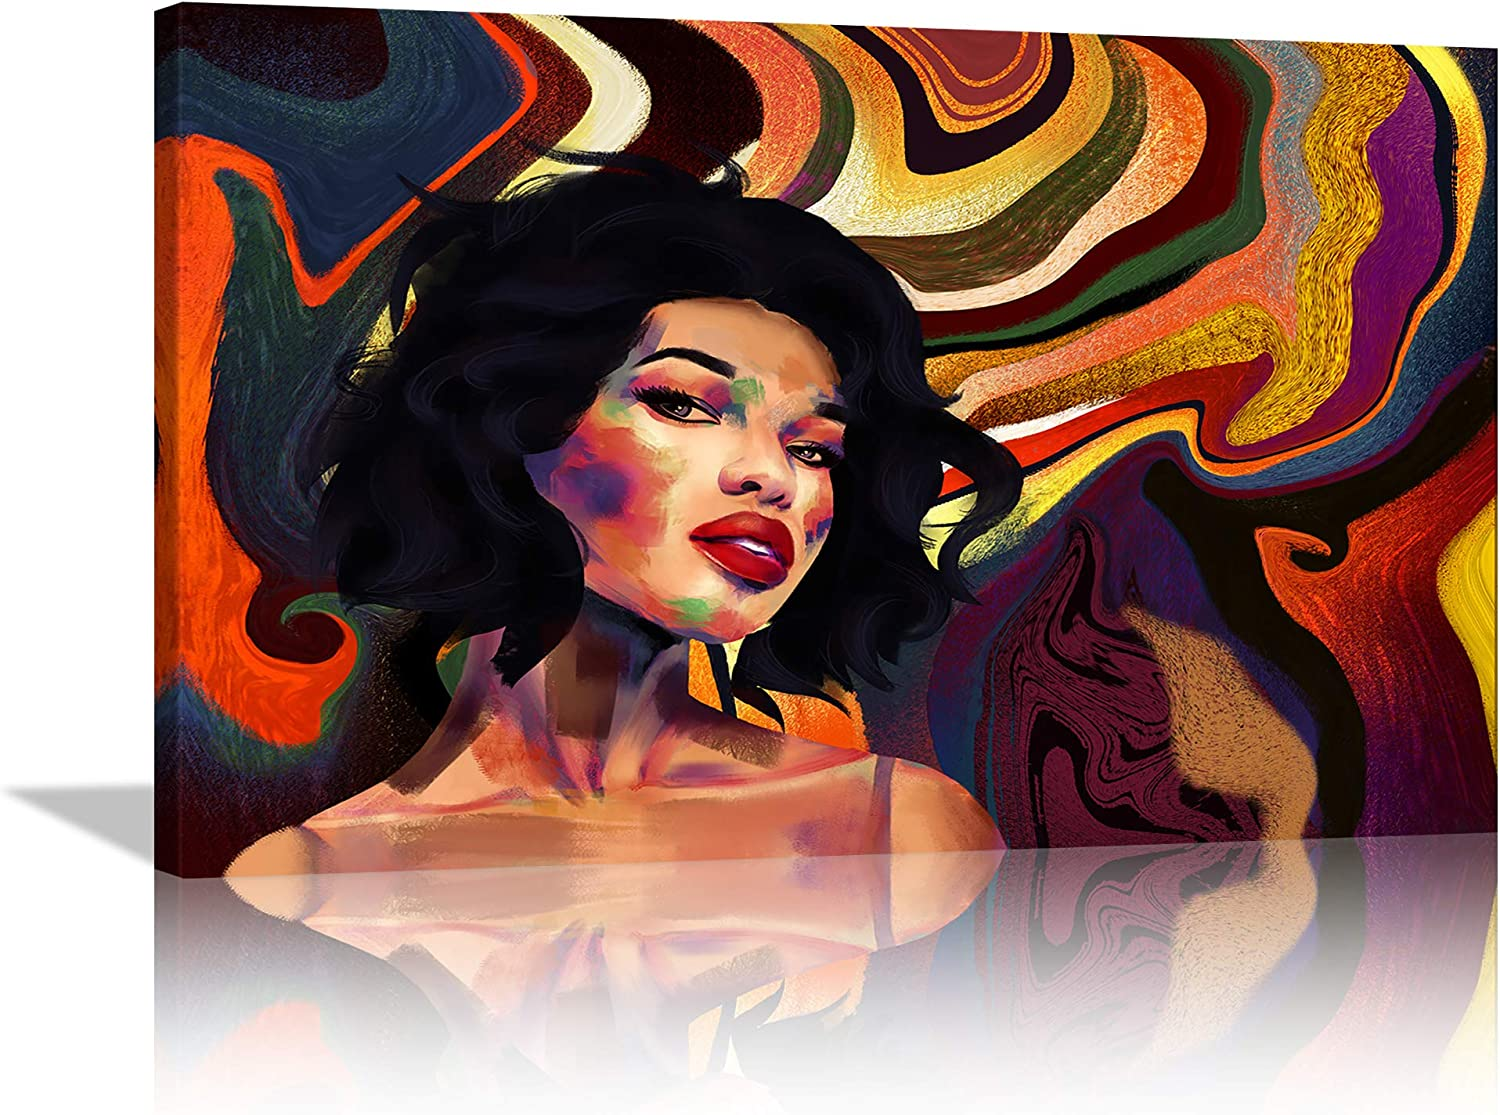 AMEMNY Fixed price for sale Black Women Wall African Recommendation Art American Abstract